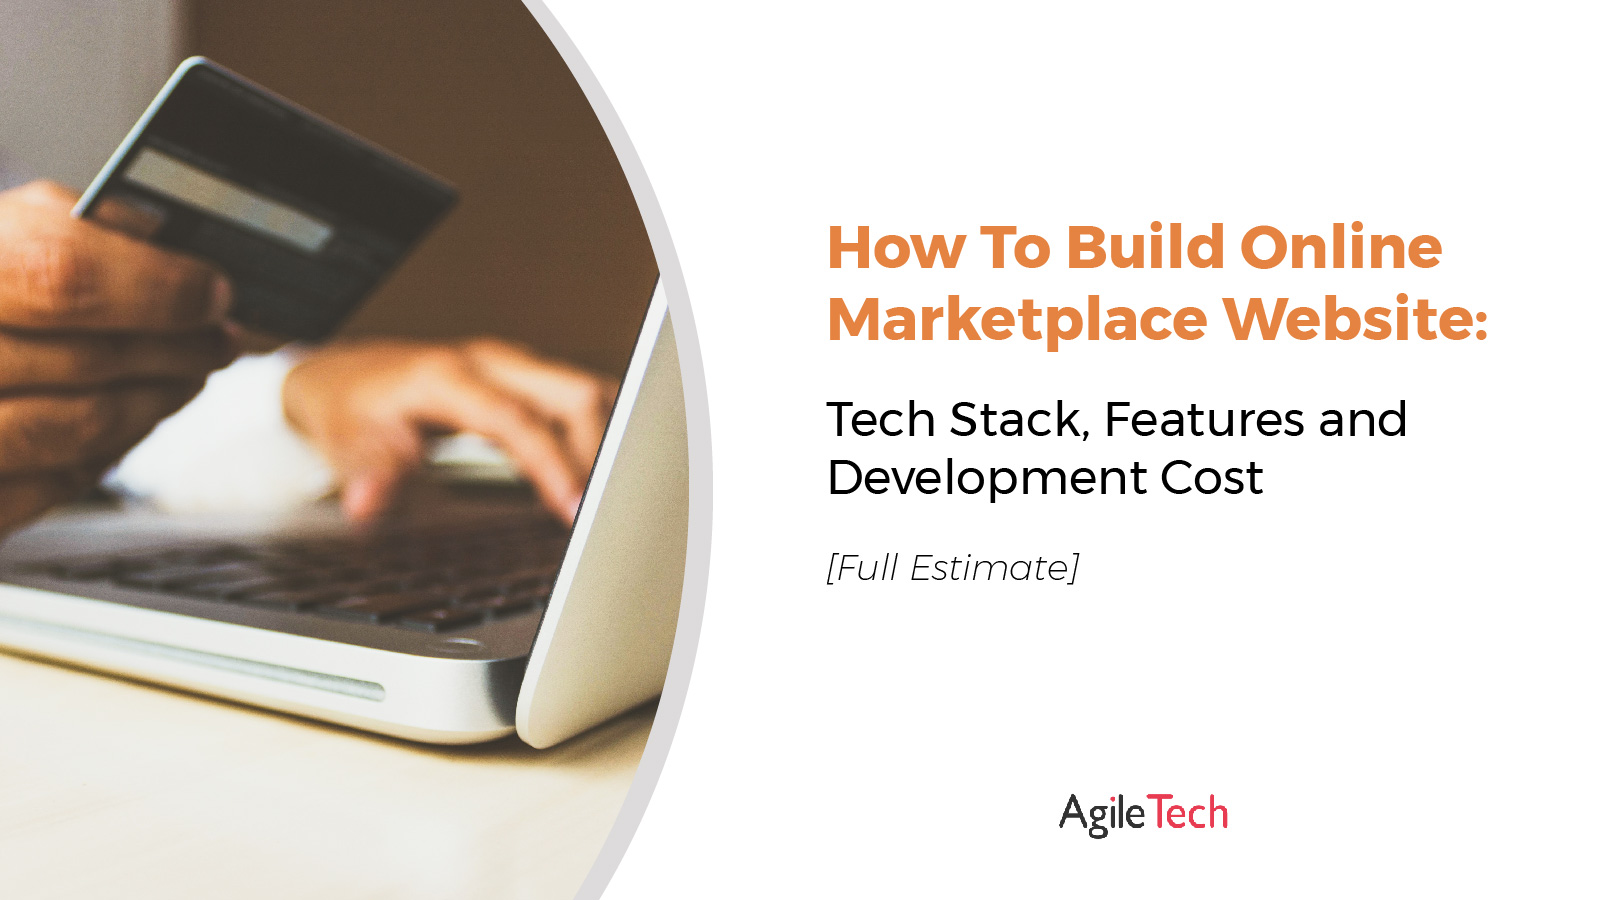 how cost to build successful online marketplace website tech stack features development budget by agiletech